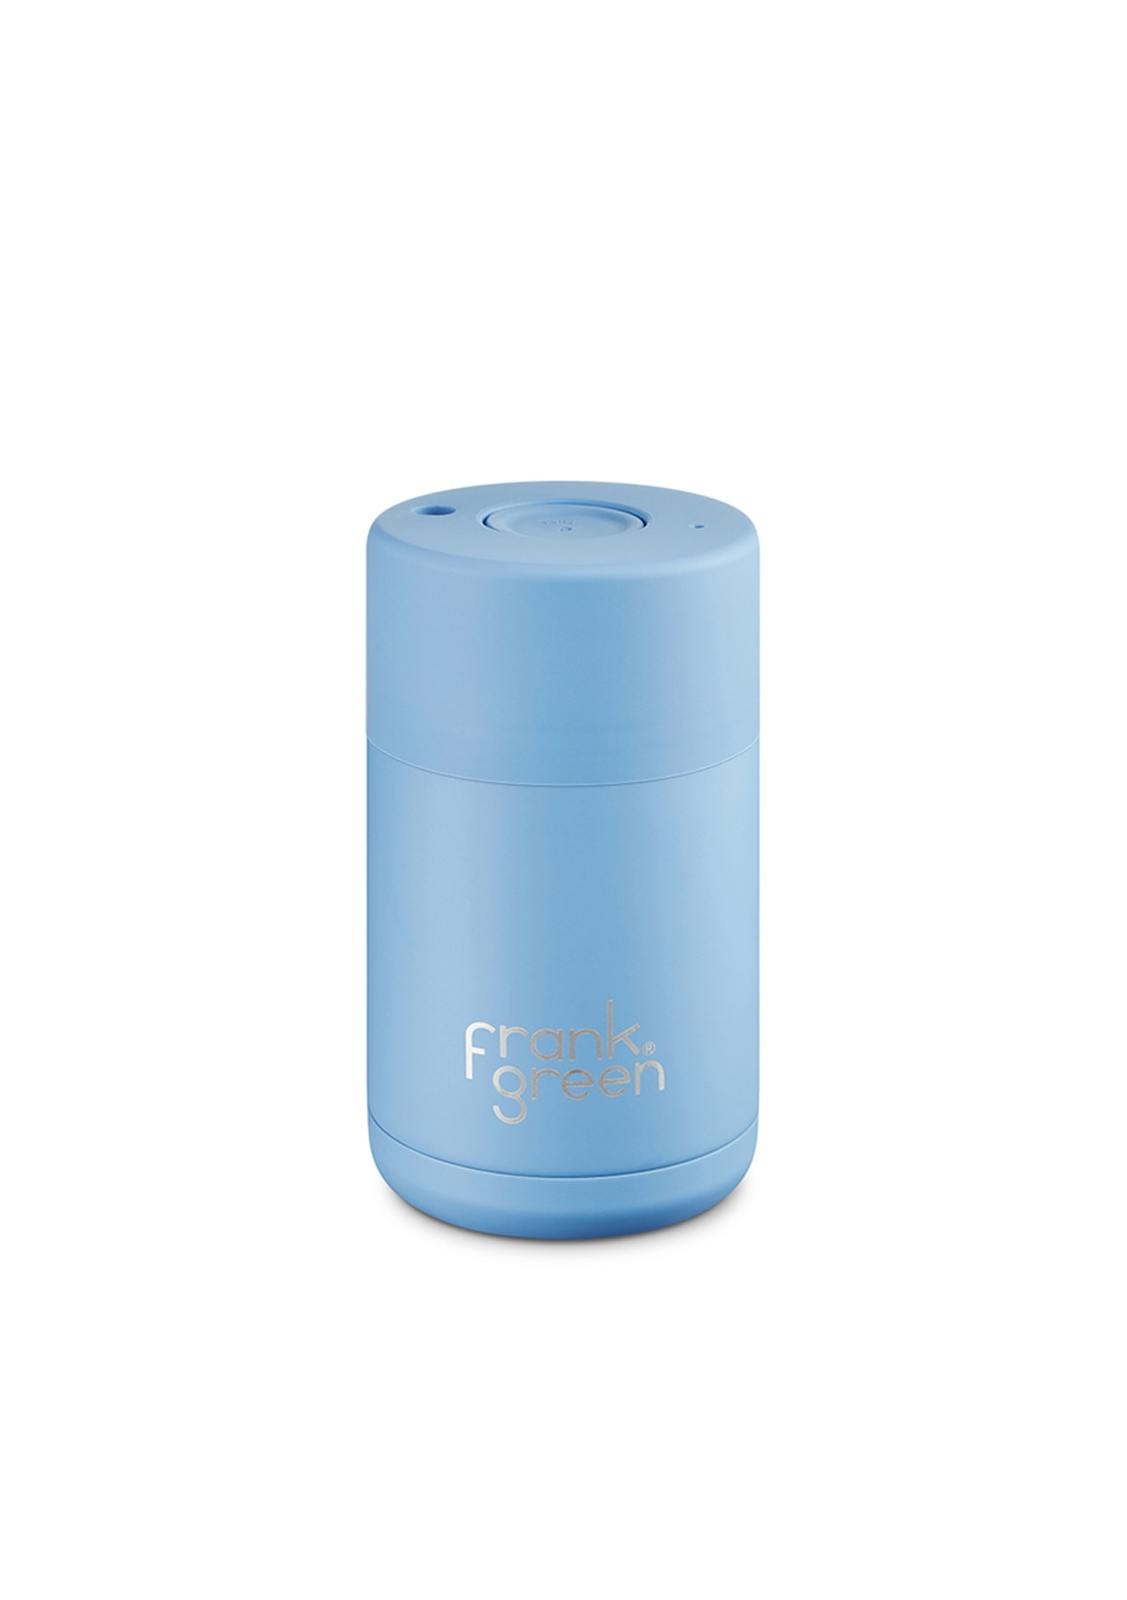 Frank Green: Stainless Steel Reusable Cup - Little Boy Blue (10oz/295ml) image